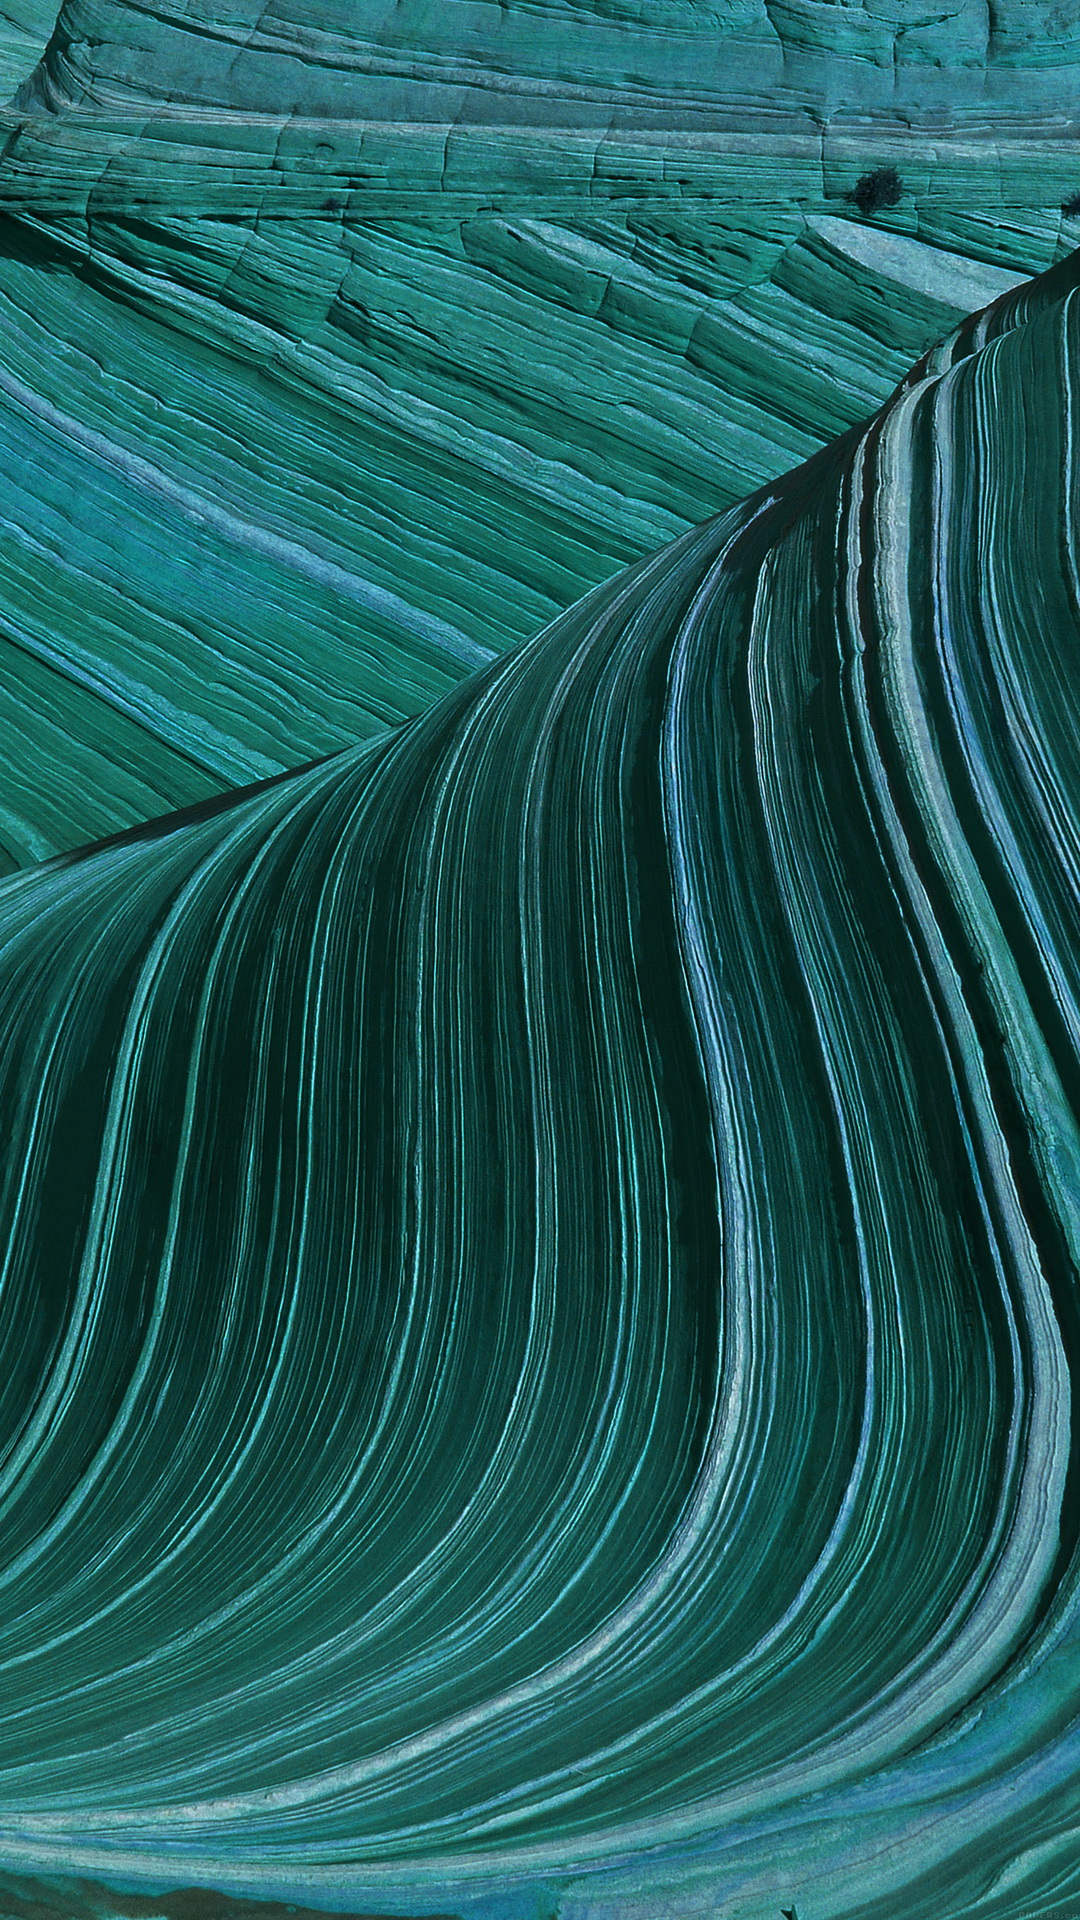 Swirling Green Patterns